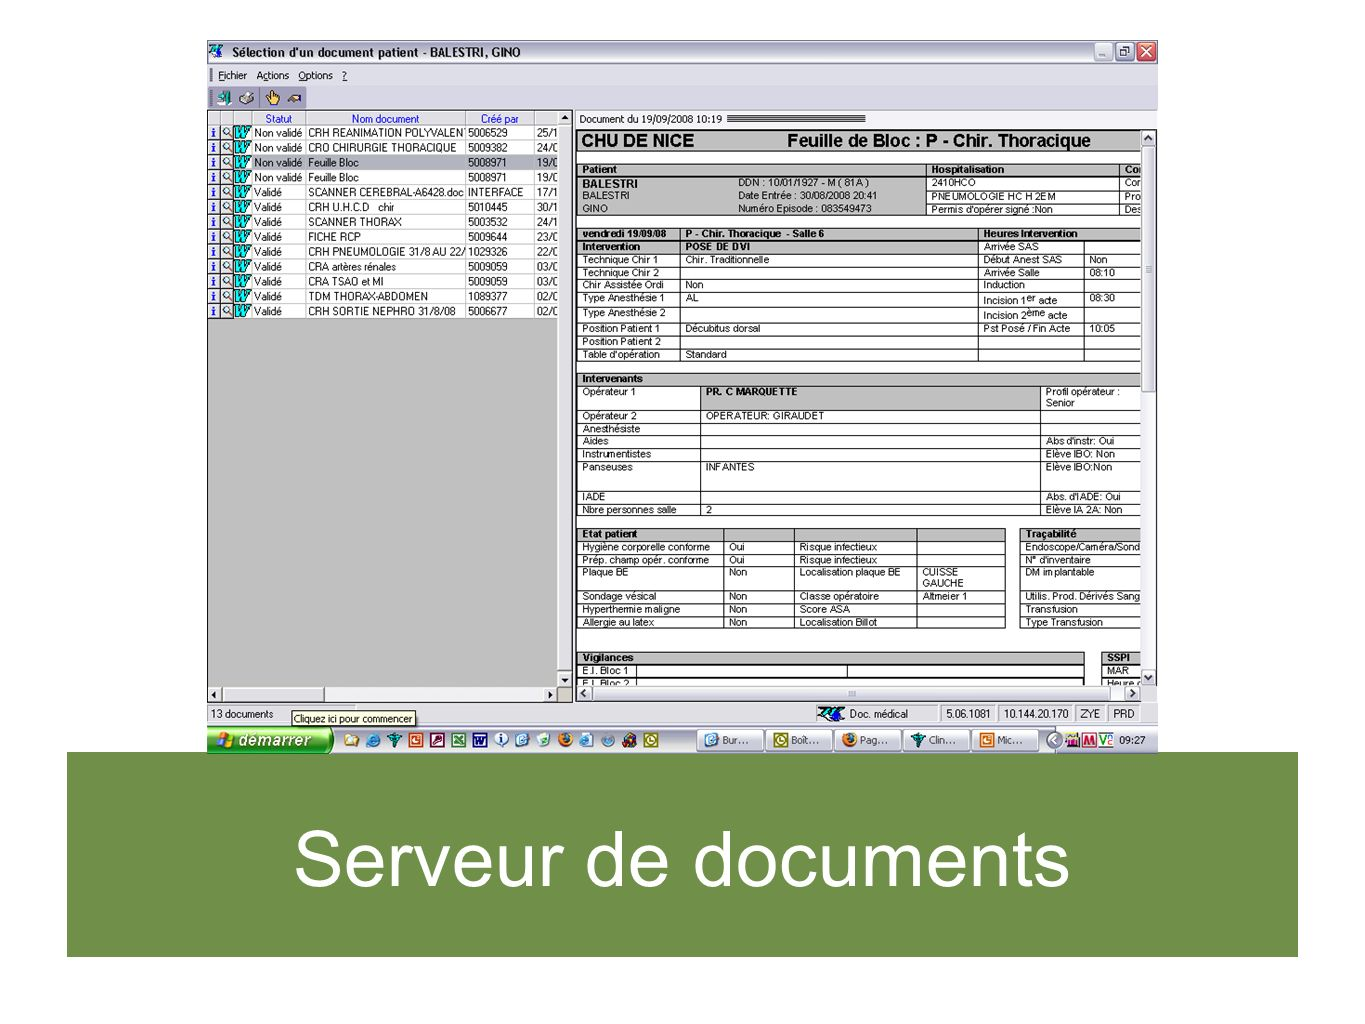 Serveur de documents